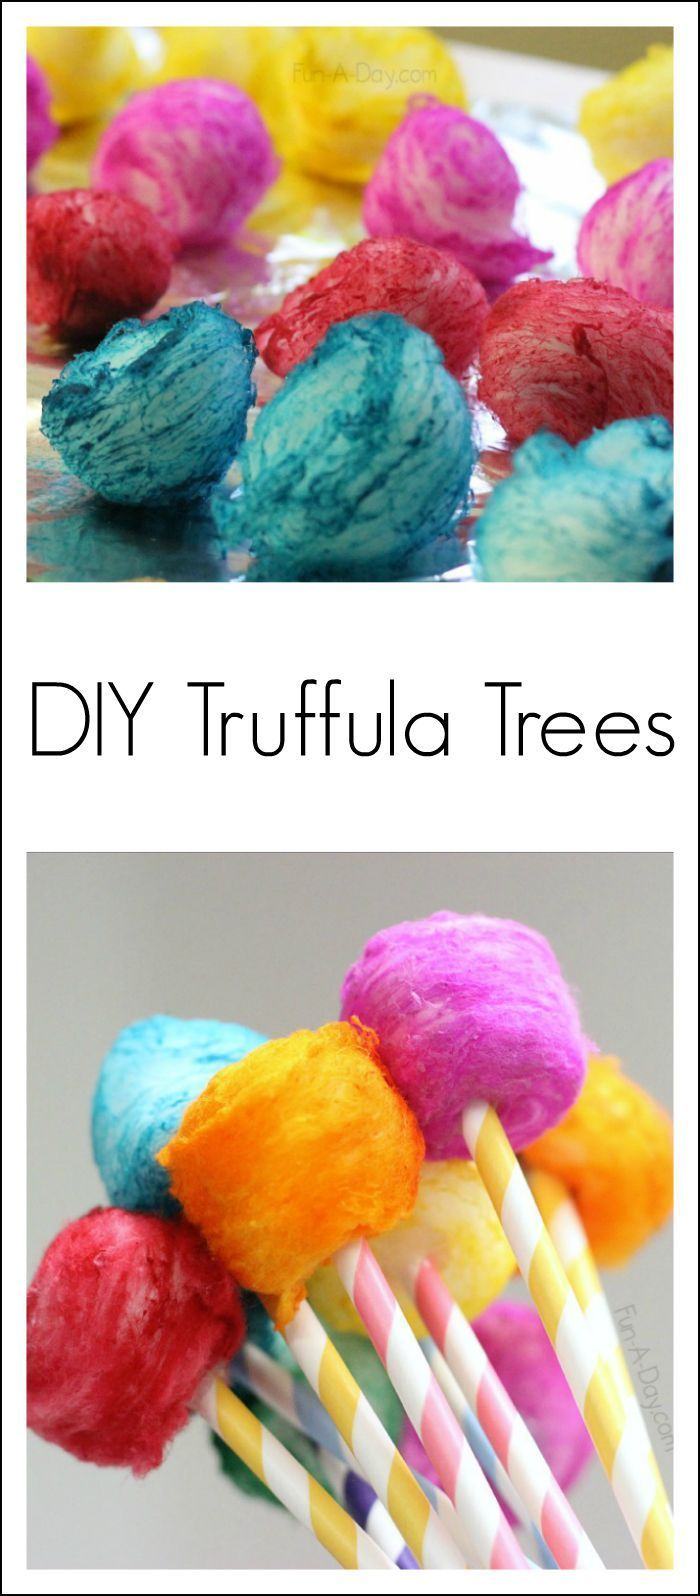 DIY Truffula trees - a colorful Dr. Seuss craft kids can make after reading The Lorax